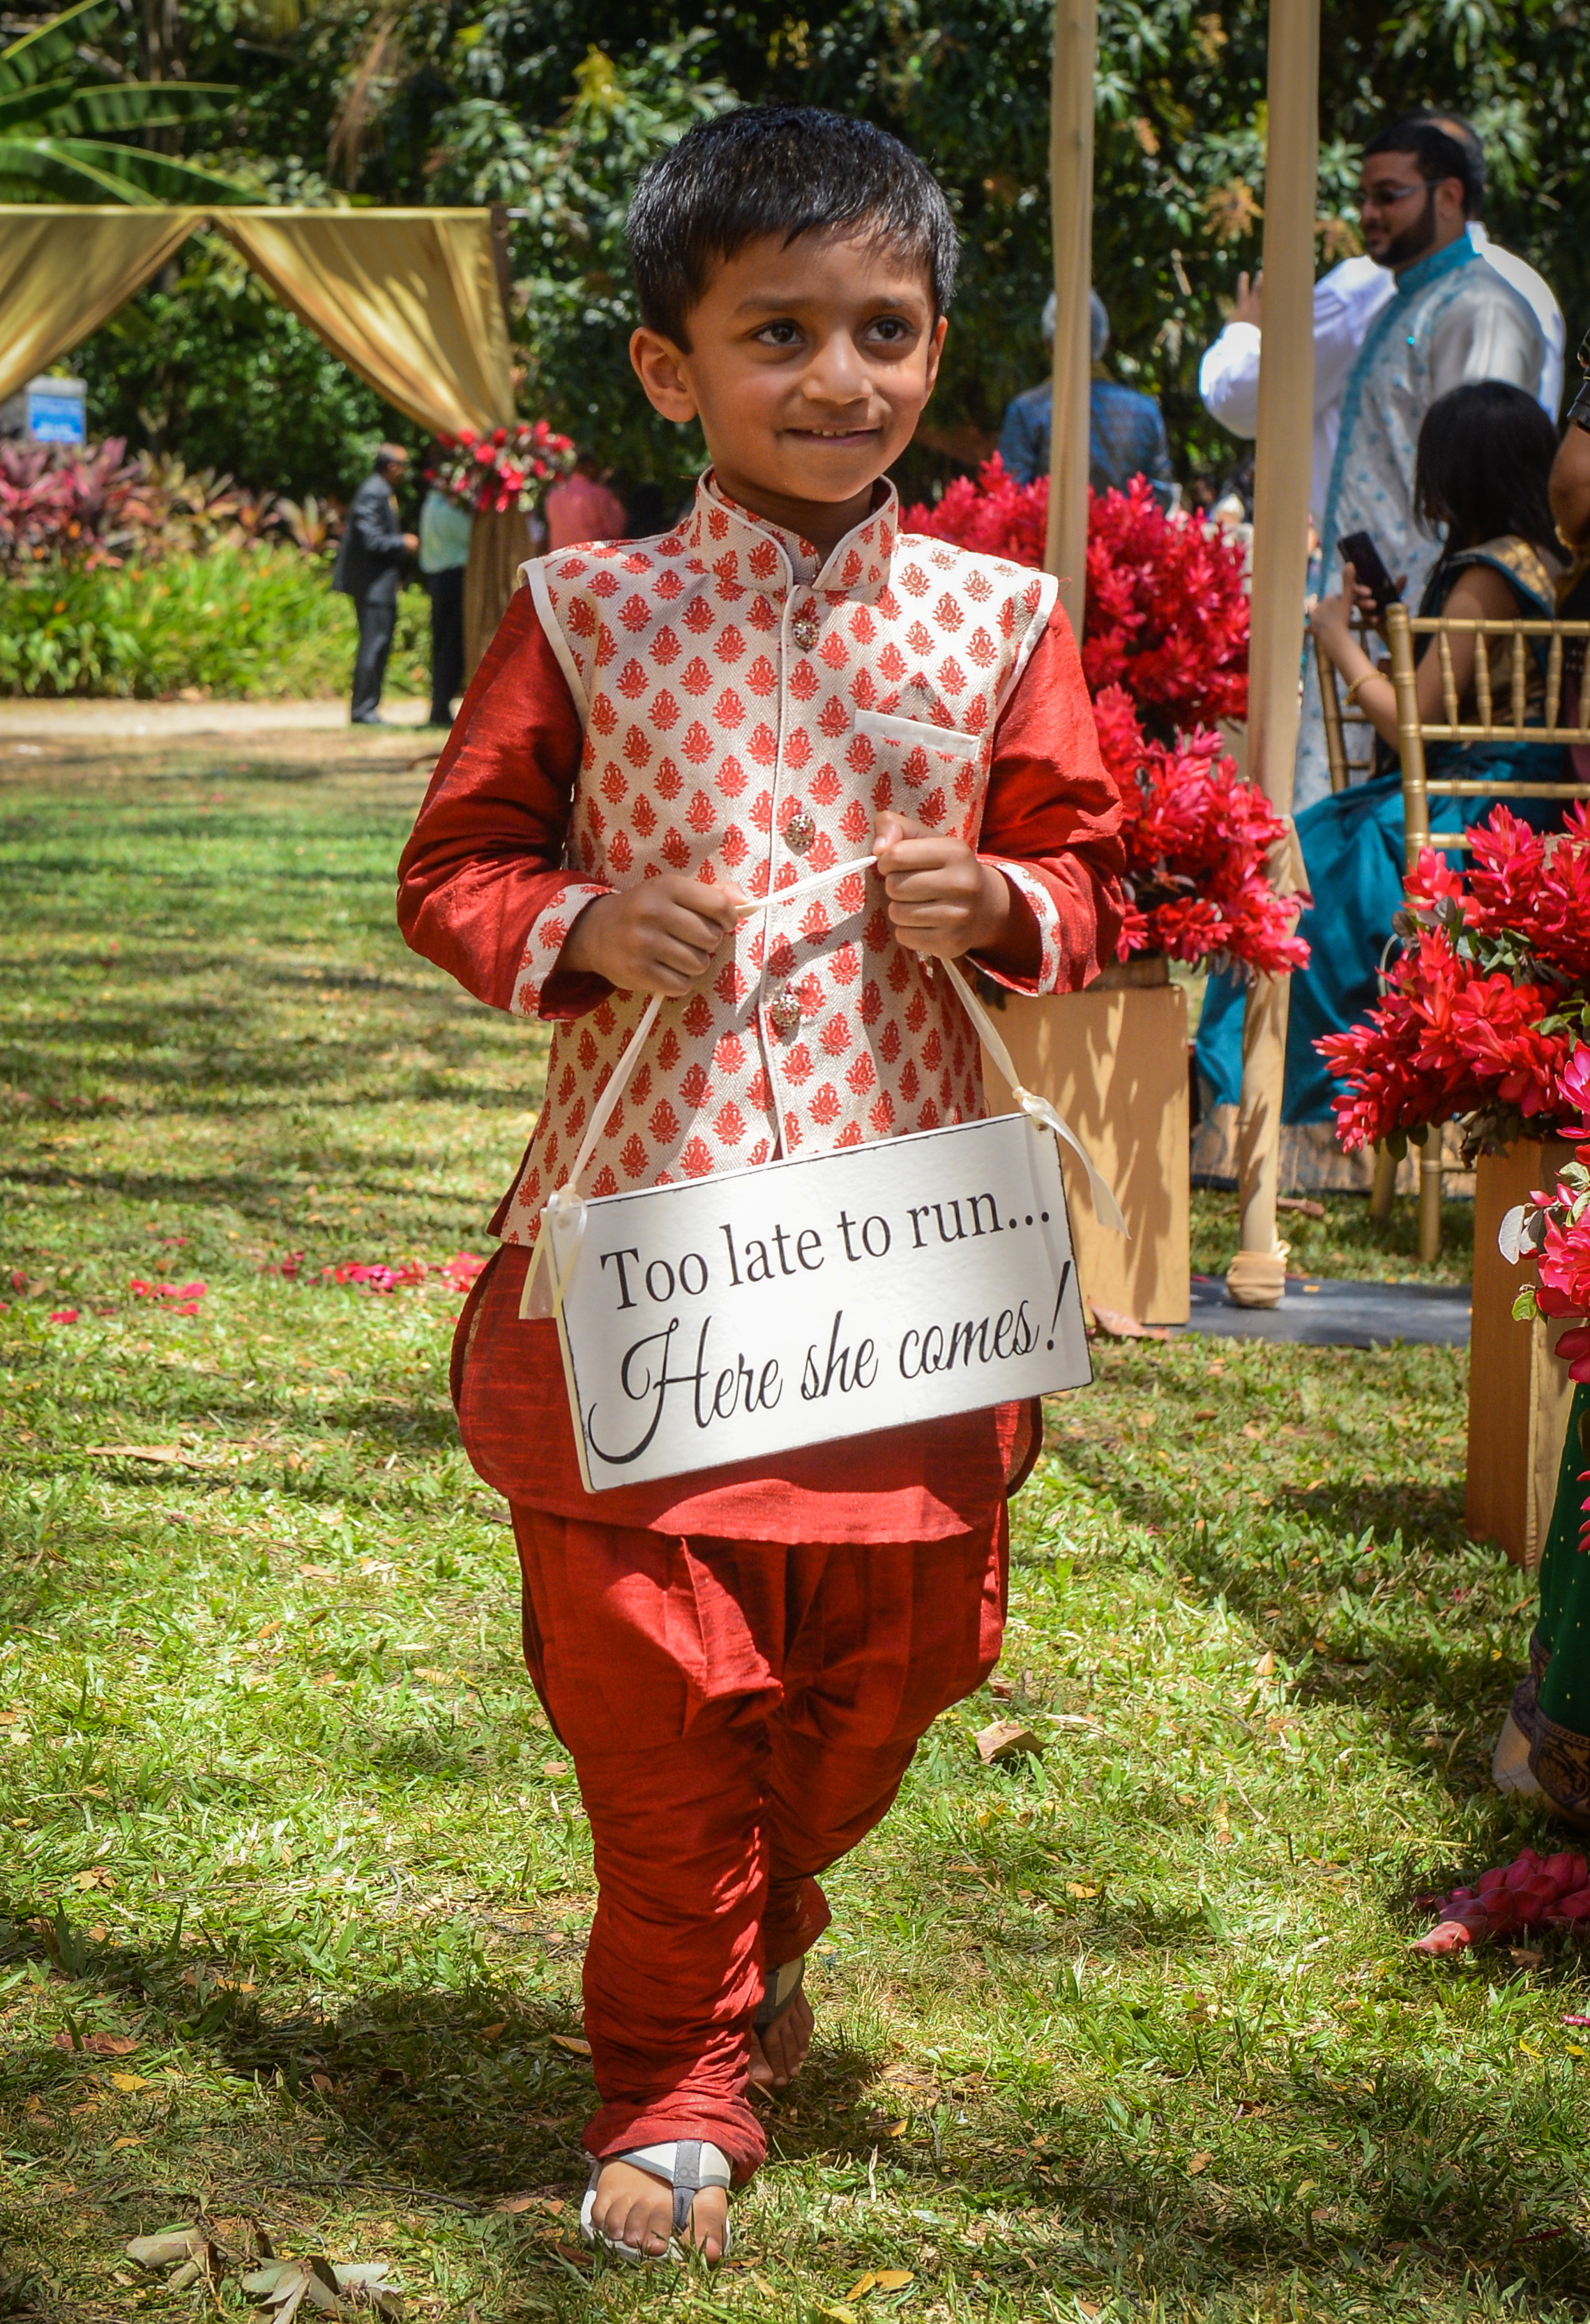 costa-rica-weddings-roshni-jignesh-28.jpg